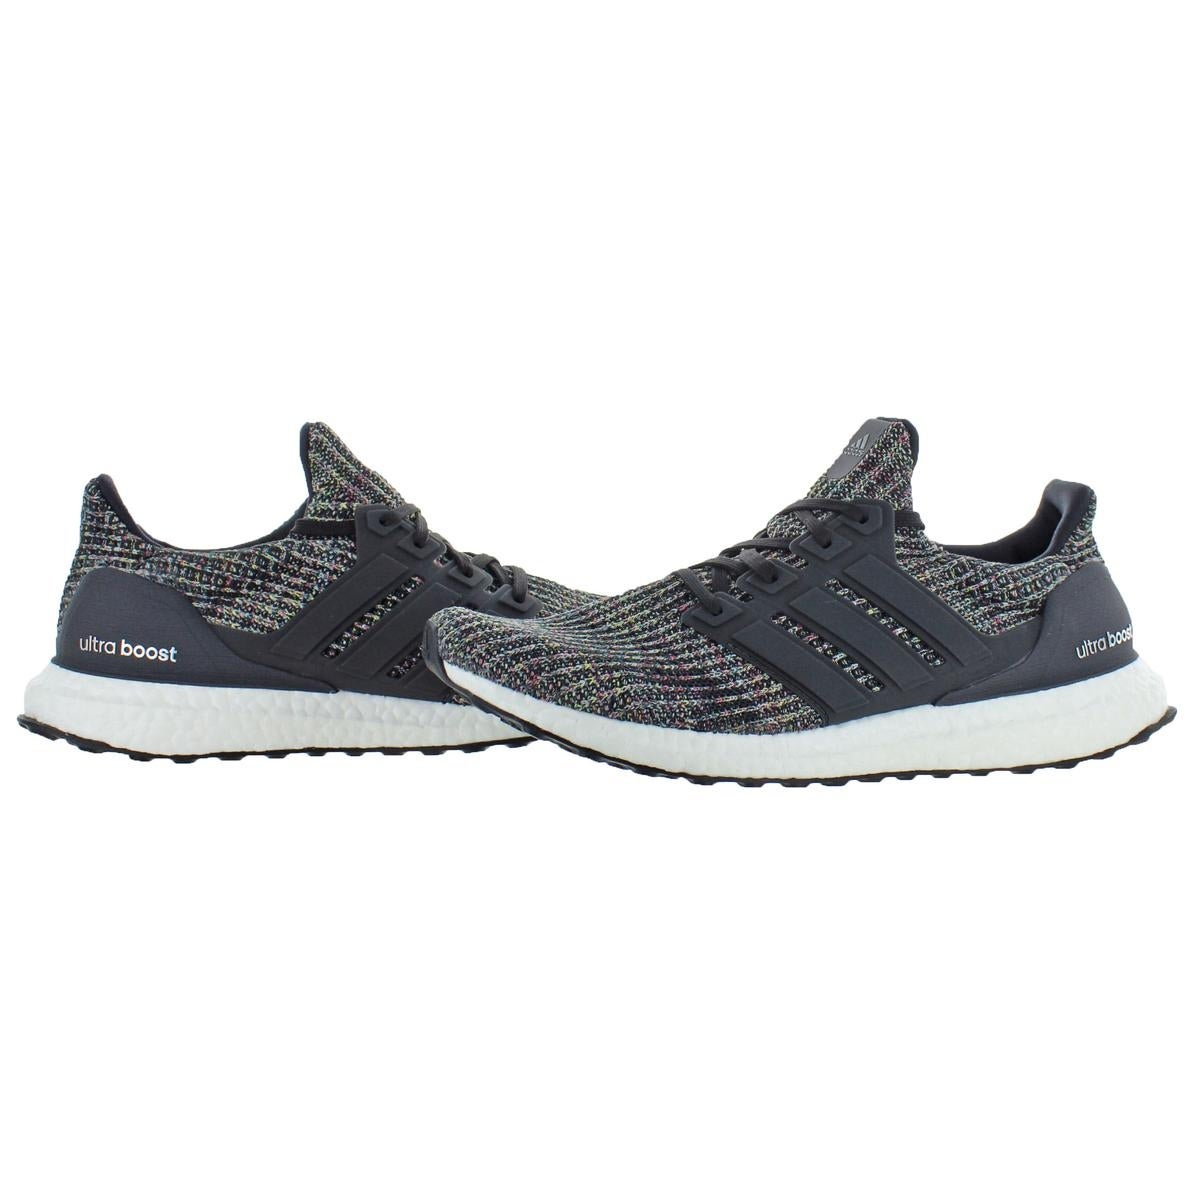 423aadea0 Shop Adidas Mens Ultraboost Running Shoes Primeknit Athletic - Free  Shipping Today - Overstock - 26639674